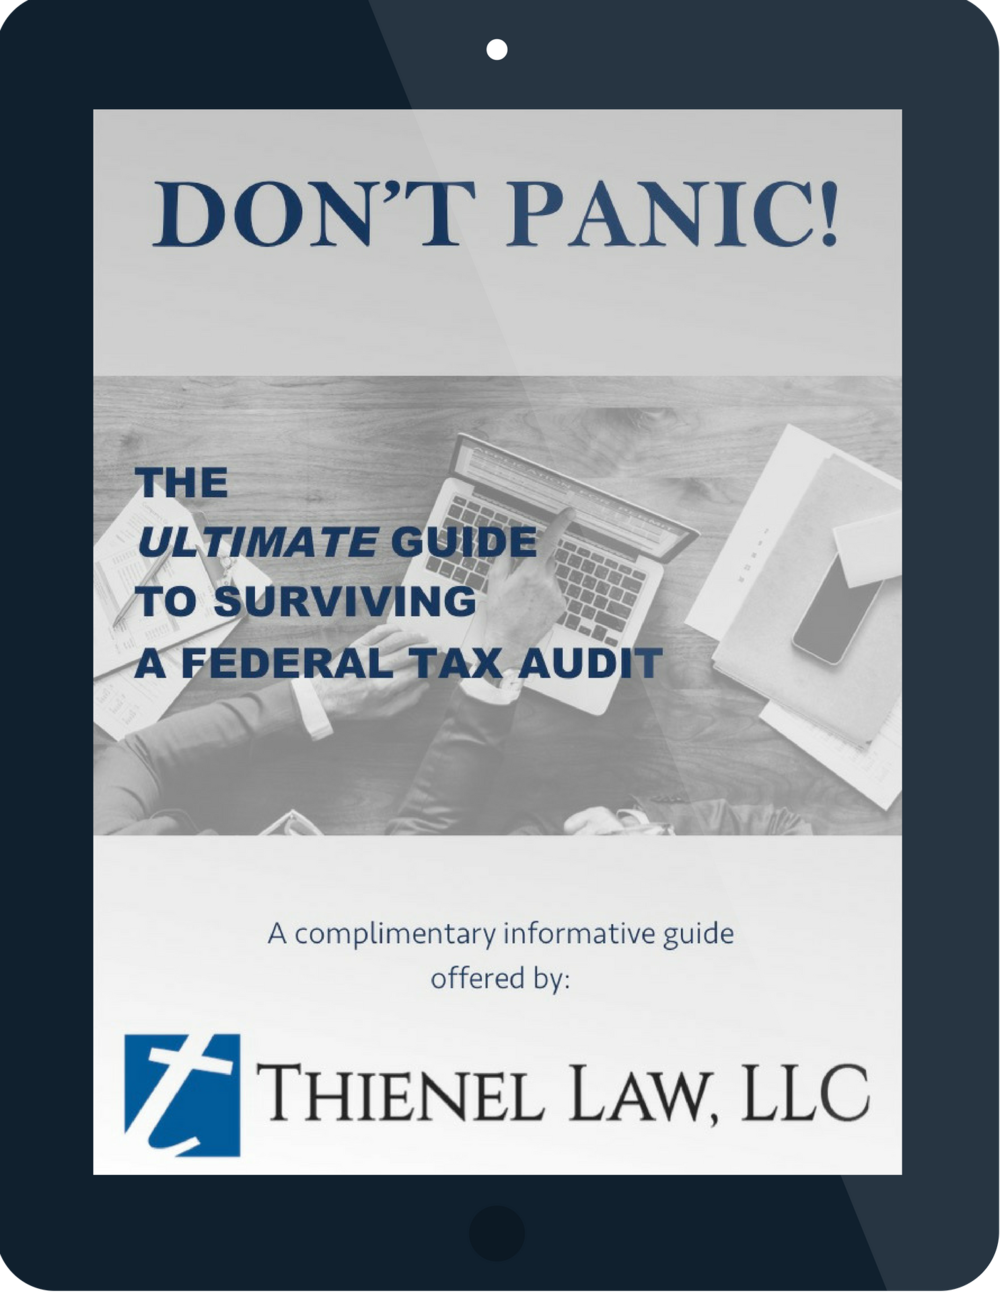 IRS Help - The Ultimate Guide to Surviving an IRS Audit